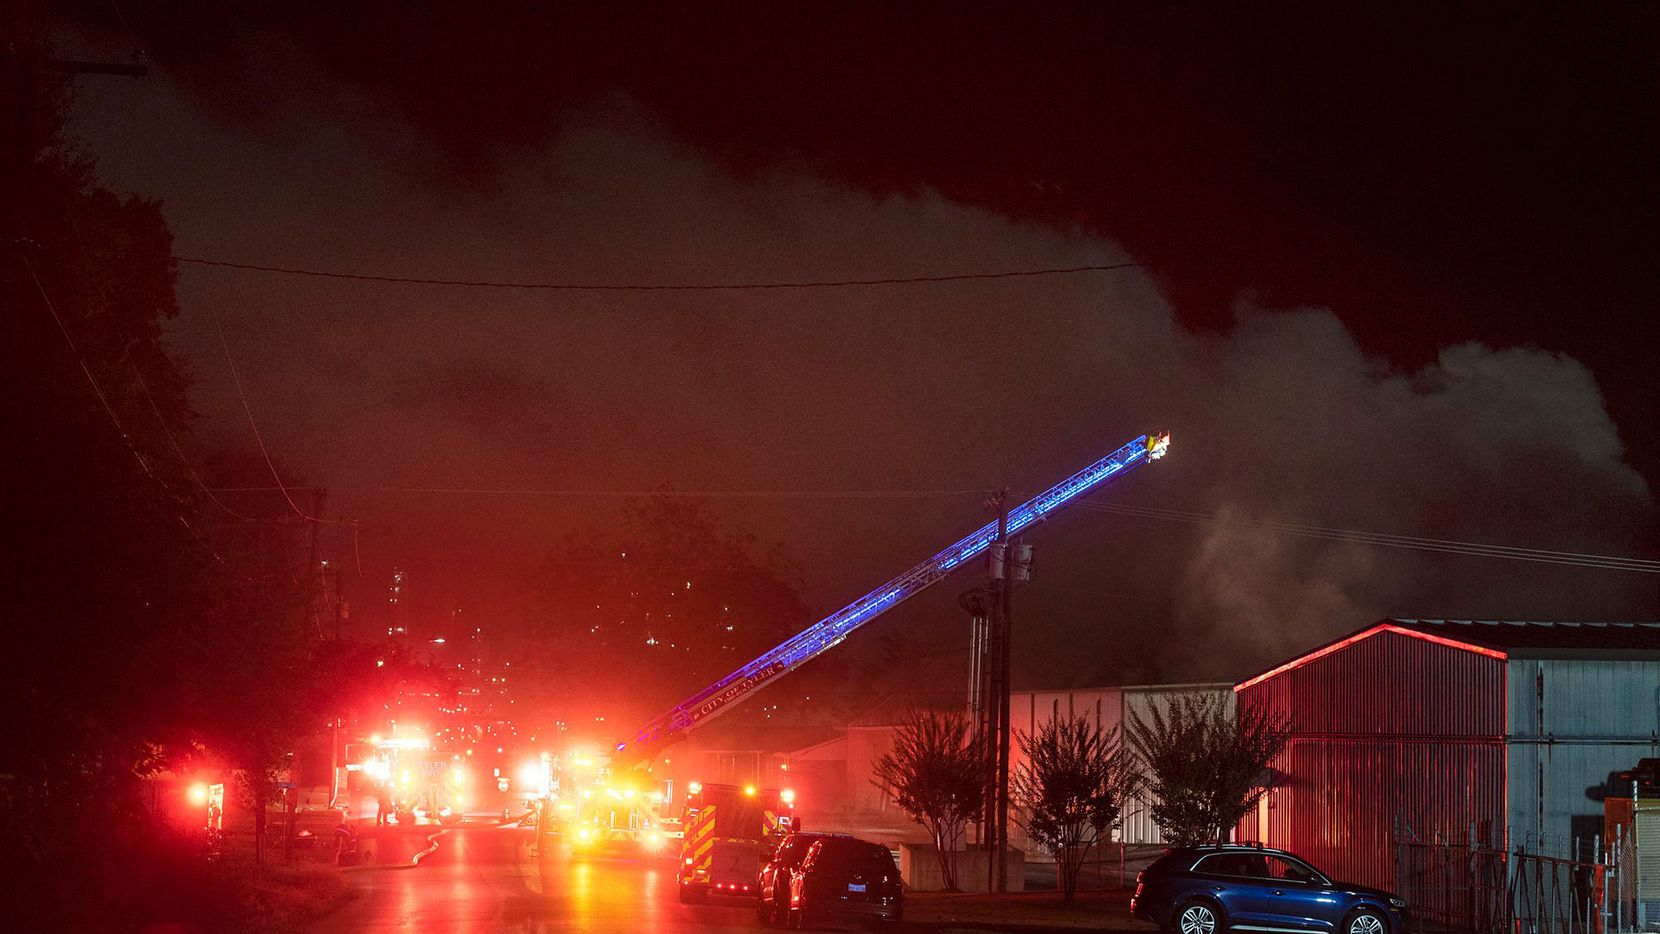 Firefighters battle a blaze at Greenberg Smoked Turkey on Nov. 6, 2020. An explosion and fire at the world famous company in Tyler brought an end to customers' orders for this year's Thanksgiving and Christmas seasons.